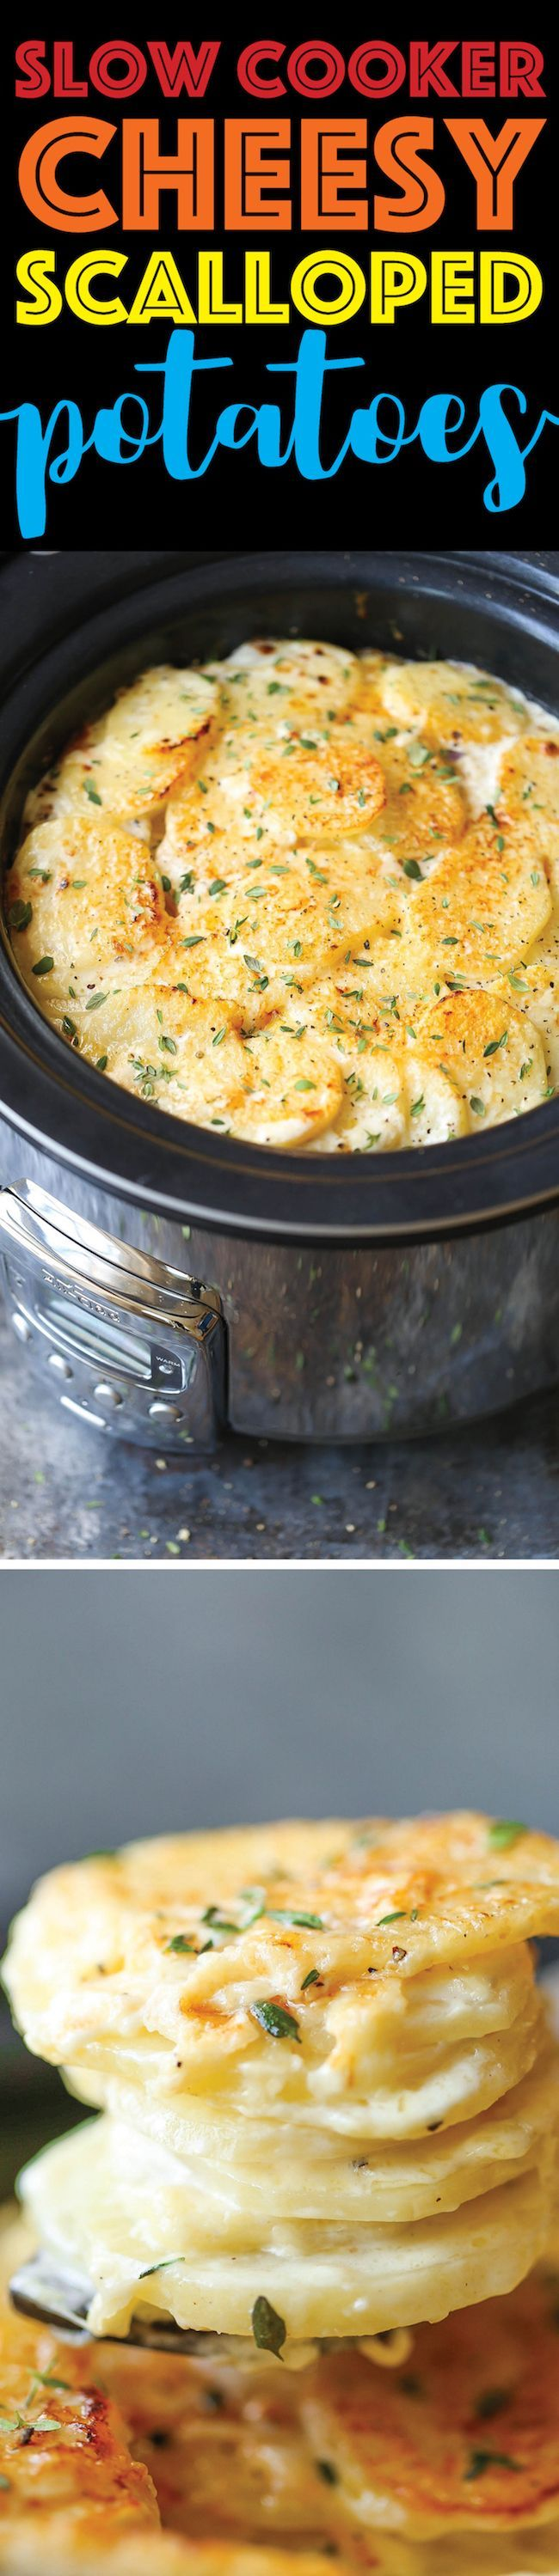 Slow Cooker Cheesy Scalloped Potatoes. This crockpot version of scalloped potatoes is so EASY, creamy, tender and cheesy! And it frees up your oven space!